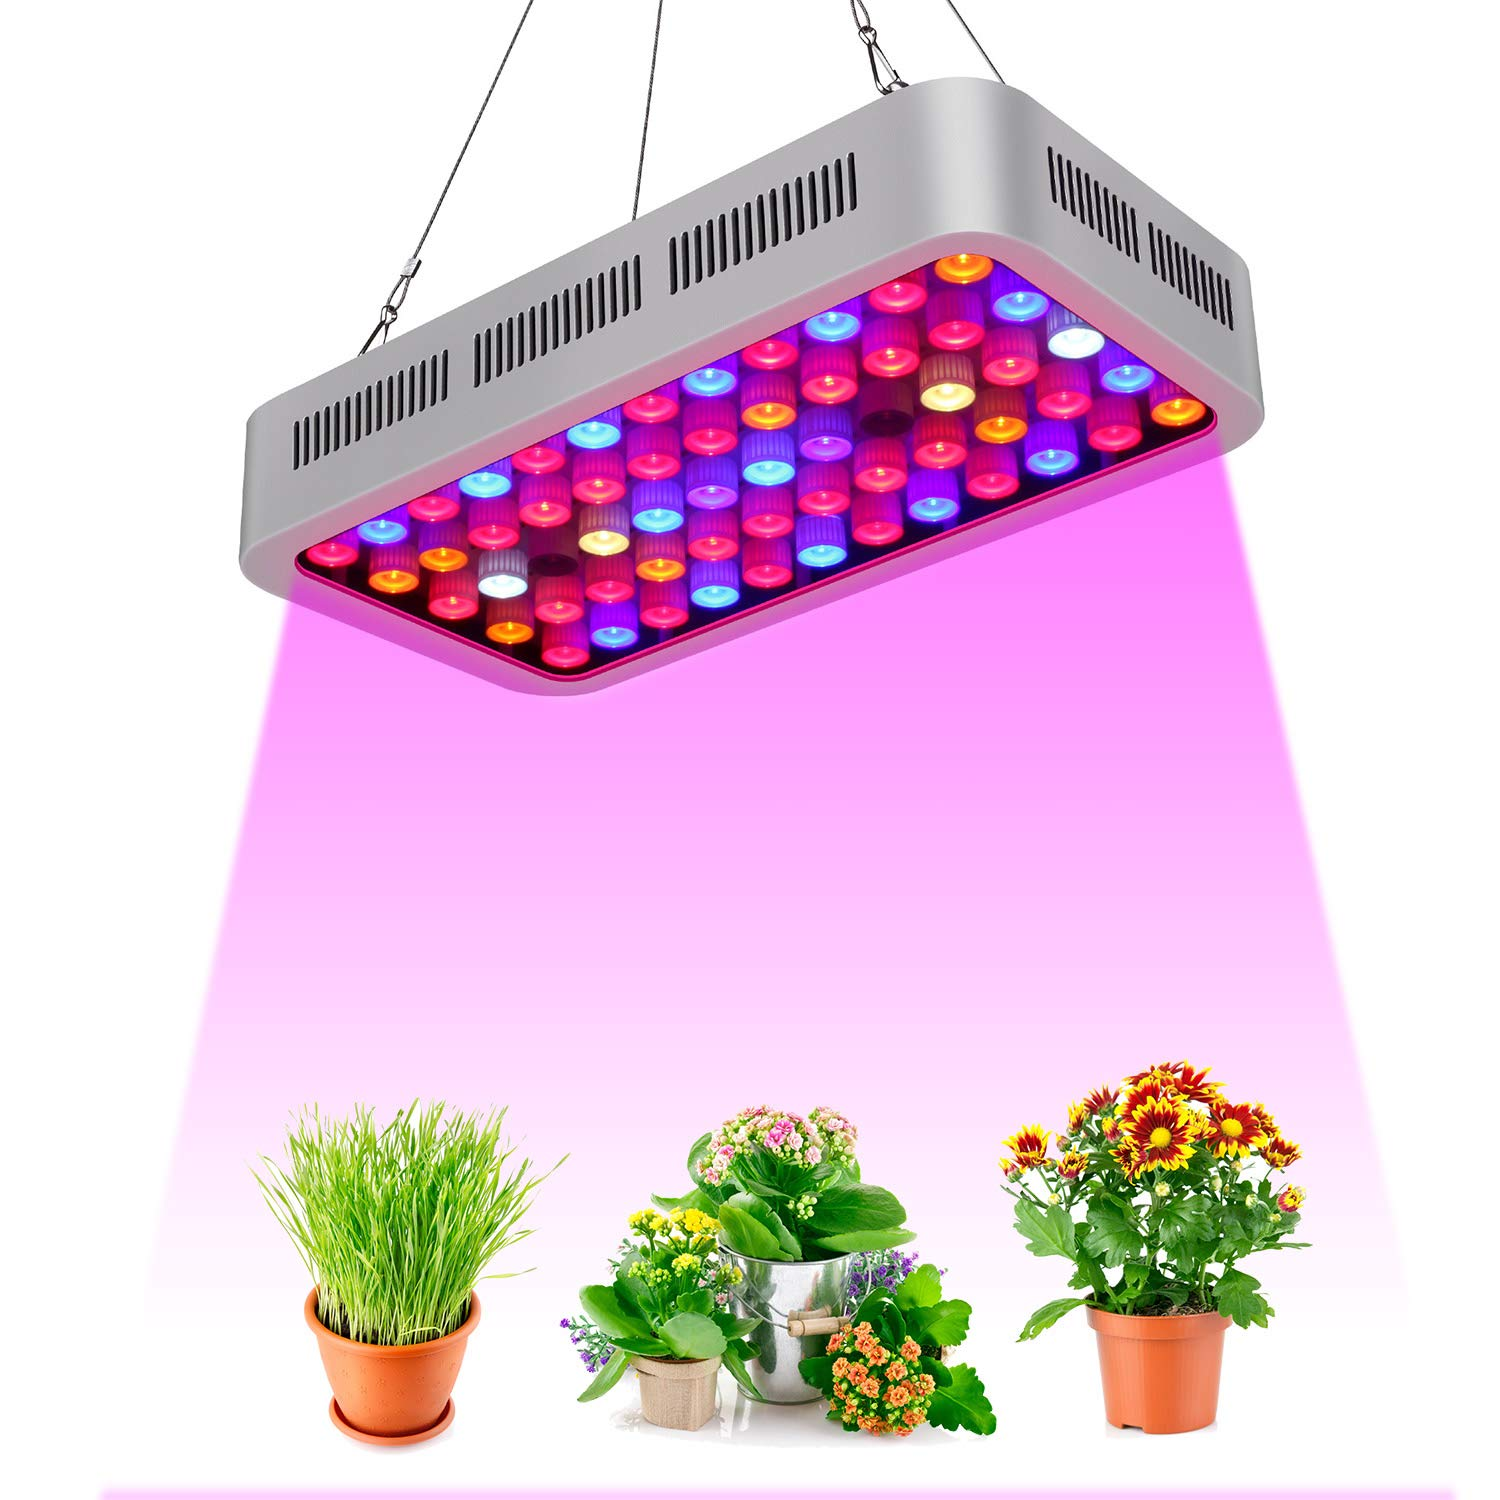 Check out the latest collection of Cannabis Led Grow Lights Hand-Picked from Amazon.com